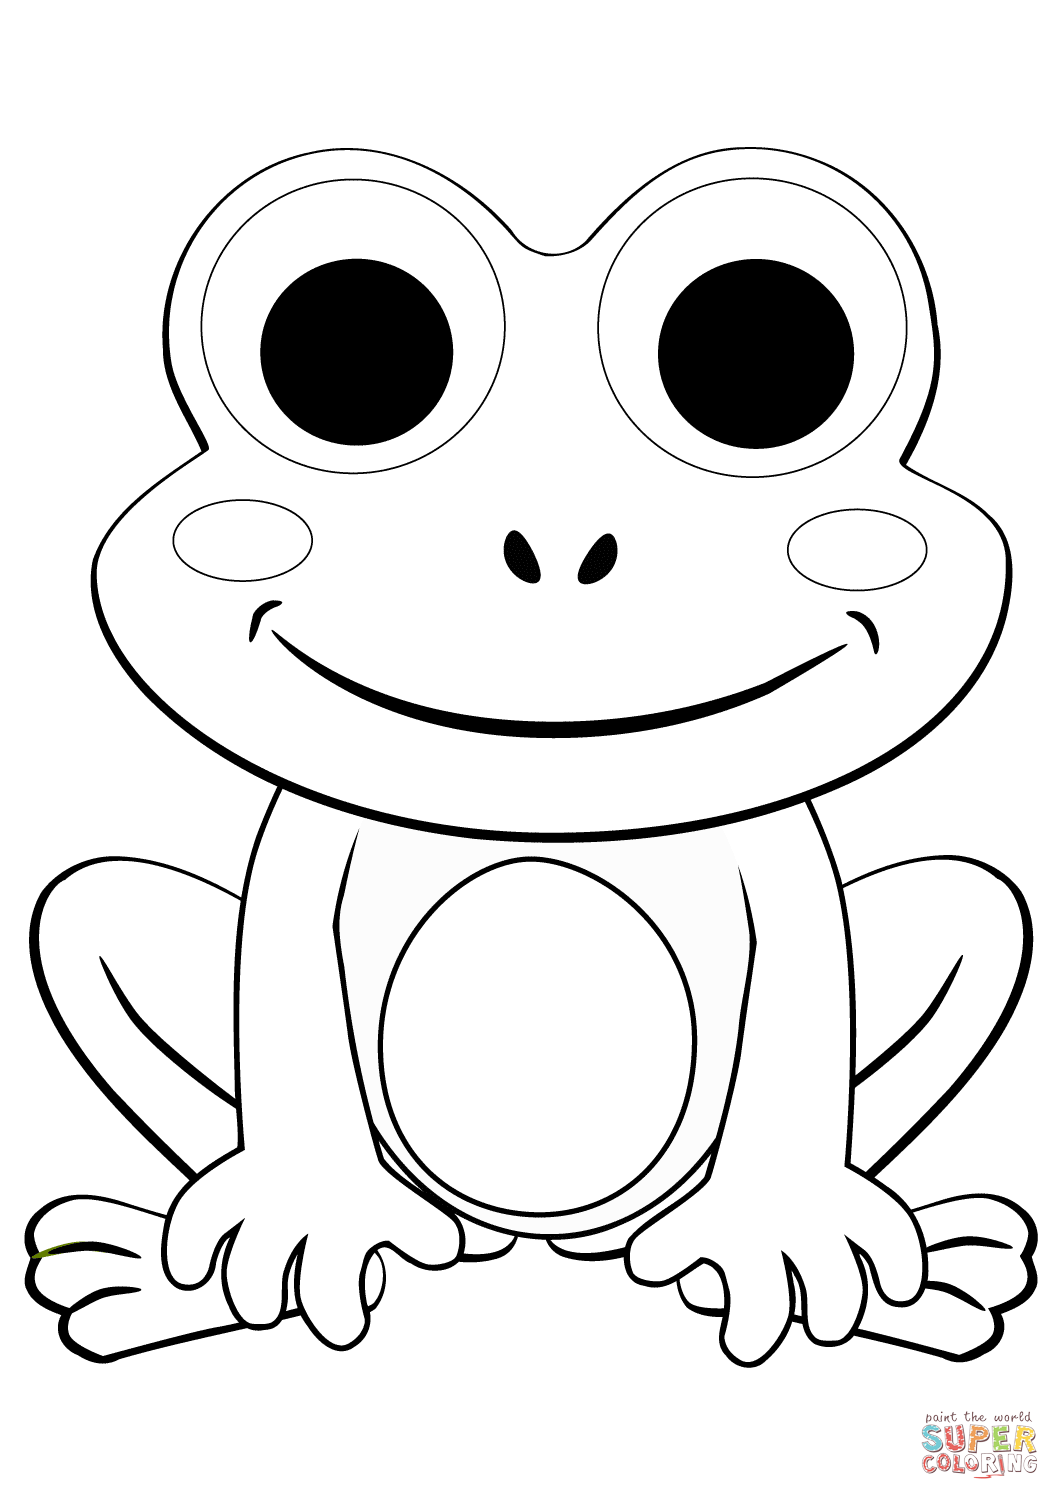 Cute Cartoon Frog Coloring Page